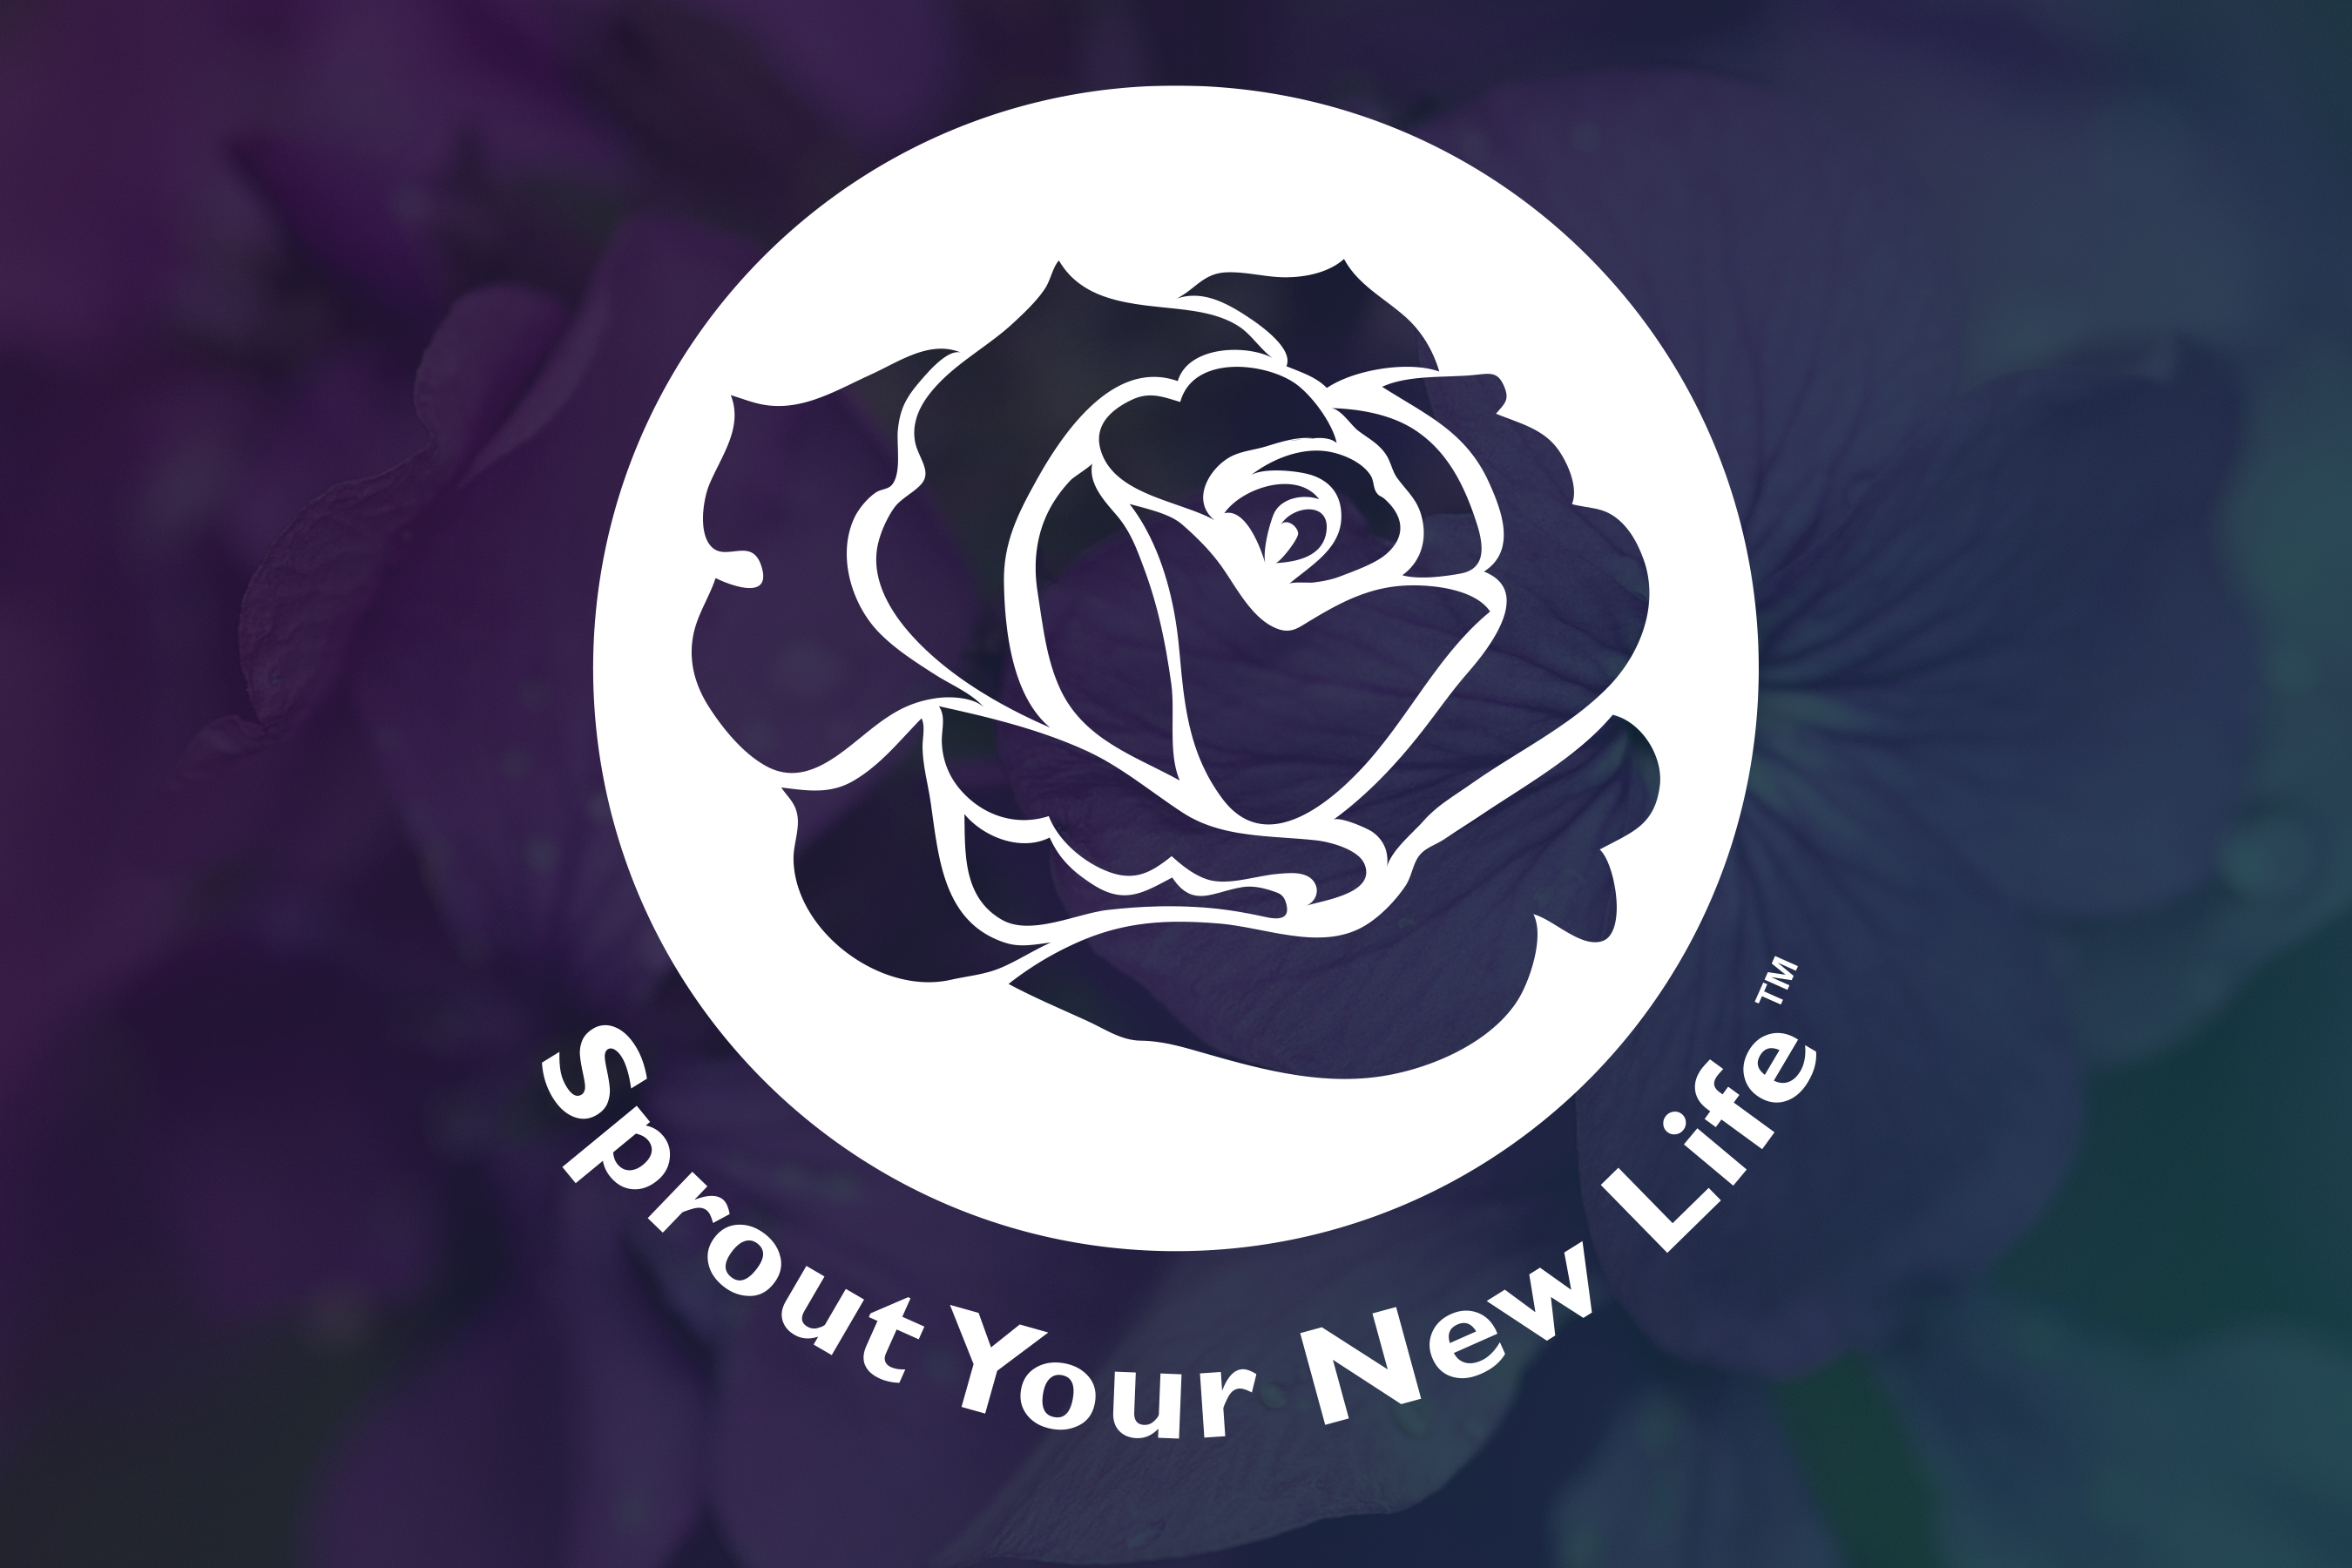 Sprout Your New Life logo on a gradient background